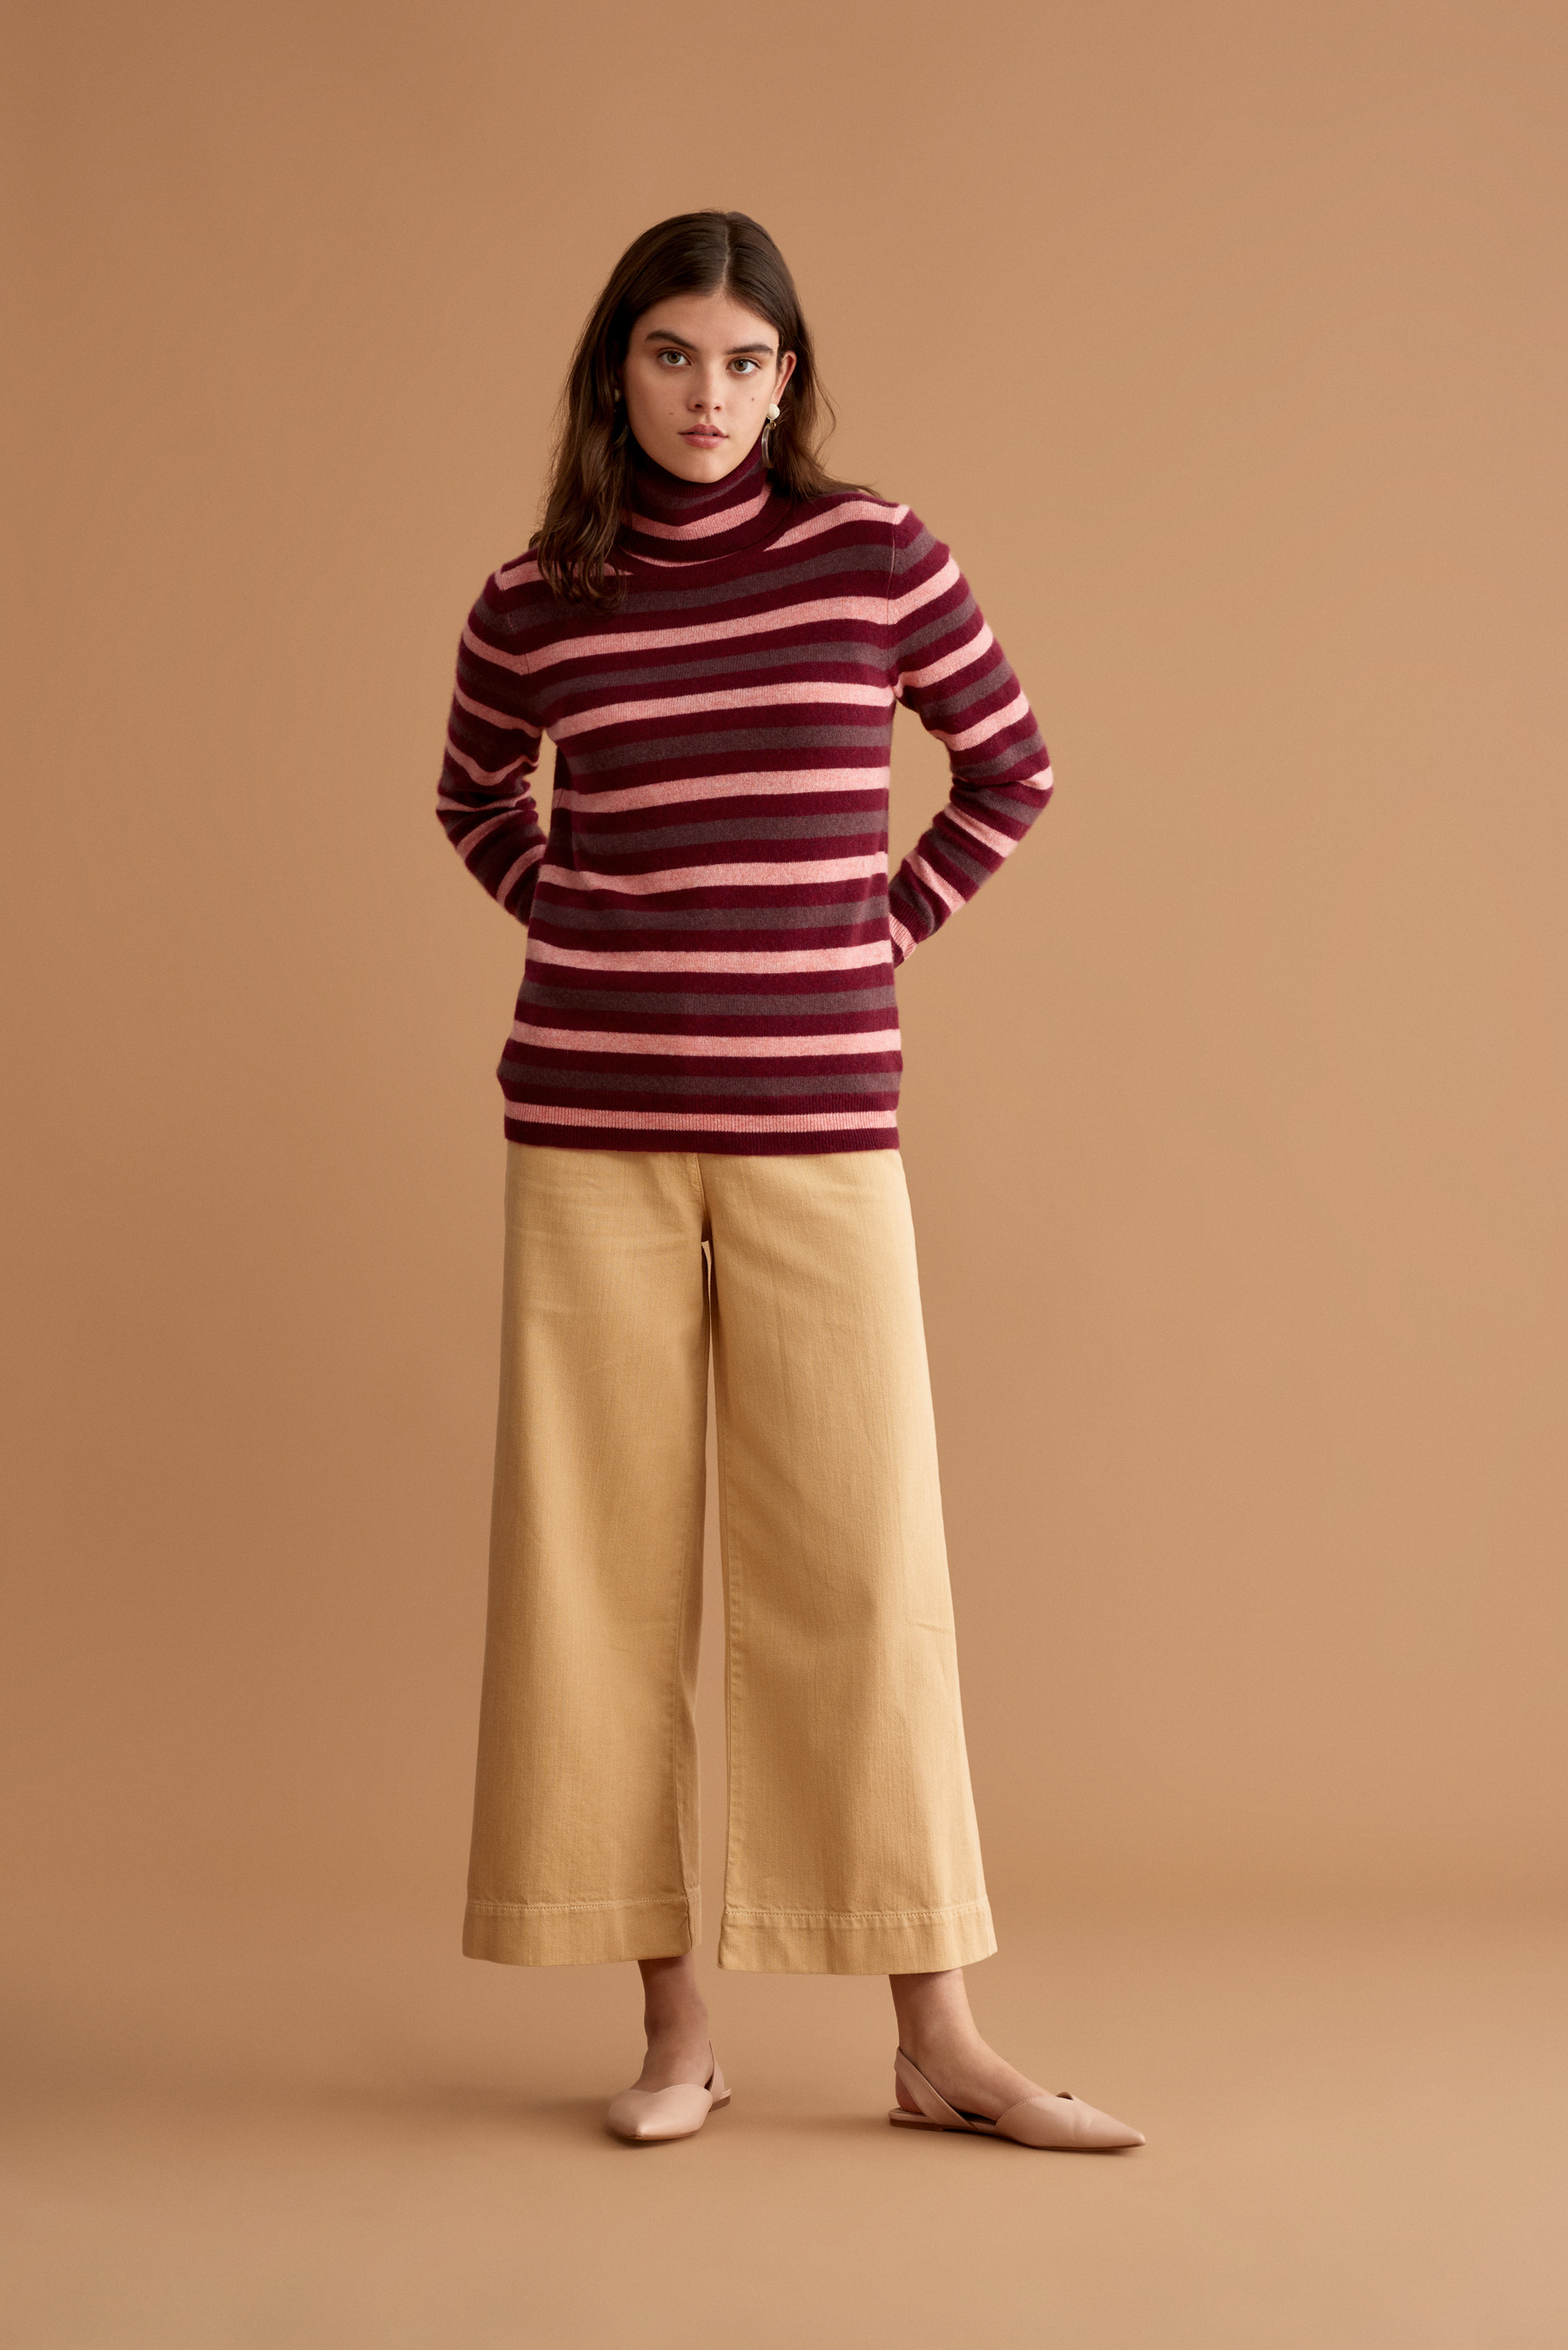 whitewarren_16649C_Essentialstripeturtleneck_163